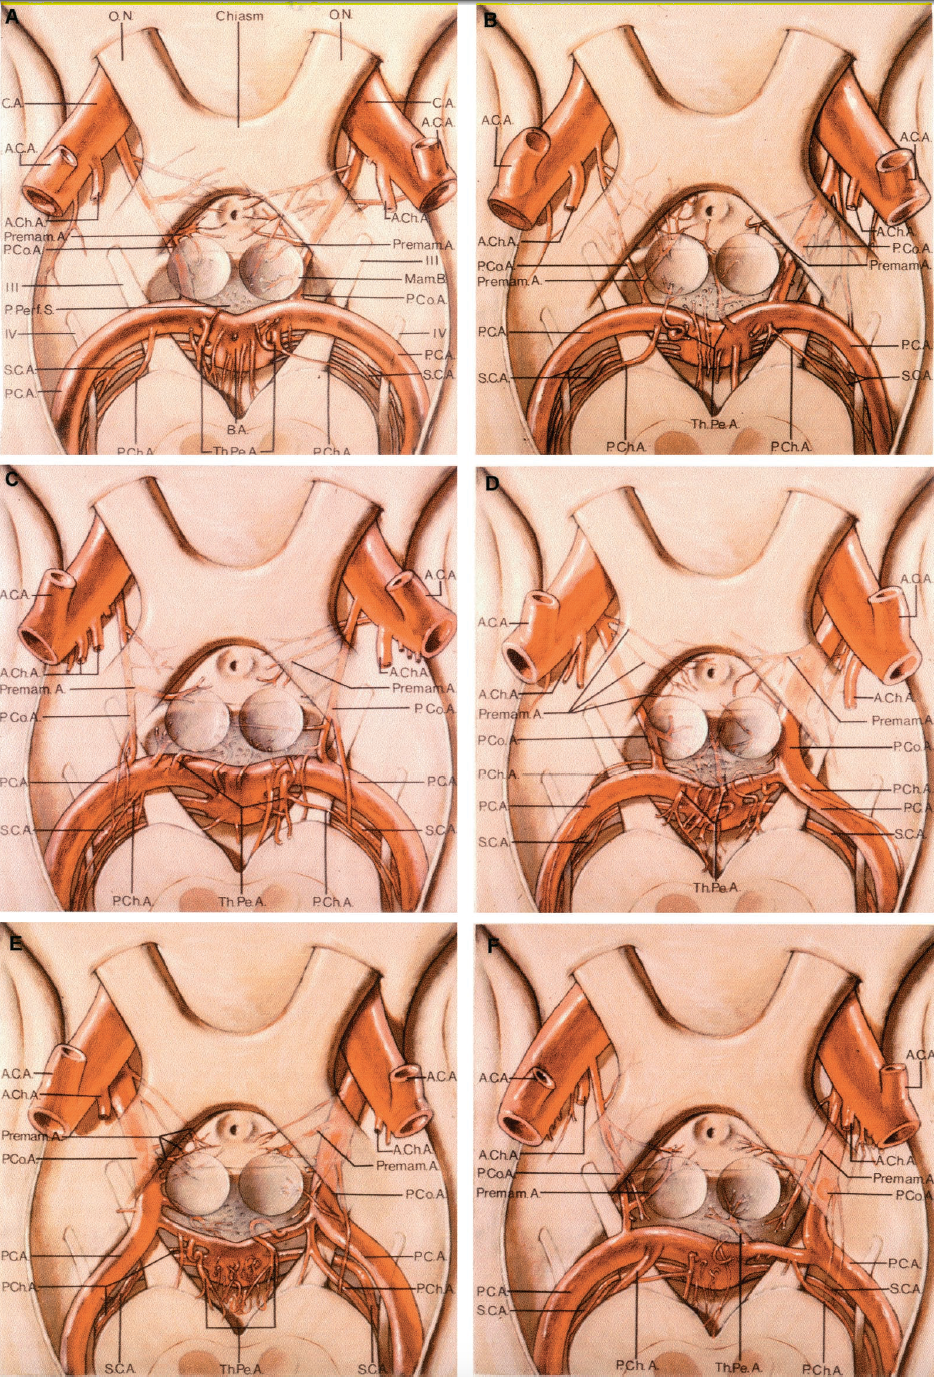 FIGURE 2.34. Superior view of the basilar, superior cerebellar, P1, and distal segments of posterior cerebral, posterior communicating, internal carotid, and proximal anterior choroidal arteries. The arterial branches below the posterior perforating substance, mamillary bodies, optic tracts, chiasm, and nerves are shown in half tone. The third and fourth nerves course between the superior cerebellar and posterior cerebral arteries. Arterial branches to the upper pons, posterior mesencephalon, interpeduncular fossa, posterior perforating substance, mamillary bodies, tuber cinereum, optic tracts, and chiasm arise from the basilar, P1, posterior communicating, and internal carotid arteries. A, normal configuration of the posterior half of the circle of Willis; both P1s are larger than communicating arteries and the latter are not hypoplastic (diameter more than 1 mm). The right superior cerebellar artery is duplicated. The largest right P1 branch gives rise to both the thalamoperforating and the posterior choroidal arteries. Only two perforating arteries arise on the right P1. The left posterior choroidal arises on P2. Bothpremamillary arteries (largest communicating trunk to premamillary area) arise from the middle third of the PComAs. AChAs arise as a single trunk. B, hypoplastic left communicating artery. Thalamoperforating artery arises on P1 medial to the posterior choroidal arteries on both sides. The left premamillary artery arises from the posterior and the right from the anterior portion of the PComA. The superior cerebellar arteries are duplicated on both sides. C, PComAs are hypoplastic bilaterally. The largest right P1 branch gives rise to both the thalamoperforating and the PChAs. The thalamoperforating artery arises medial to the posterior choroidal artery on the left P1. The premamillary artery arises from the anterior third of the right PComA and from the middle third on the left. The left anterior choroidal arises from the carotid as two trunks. D, fet